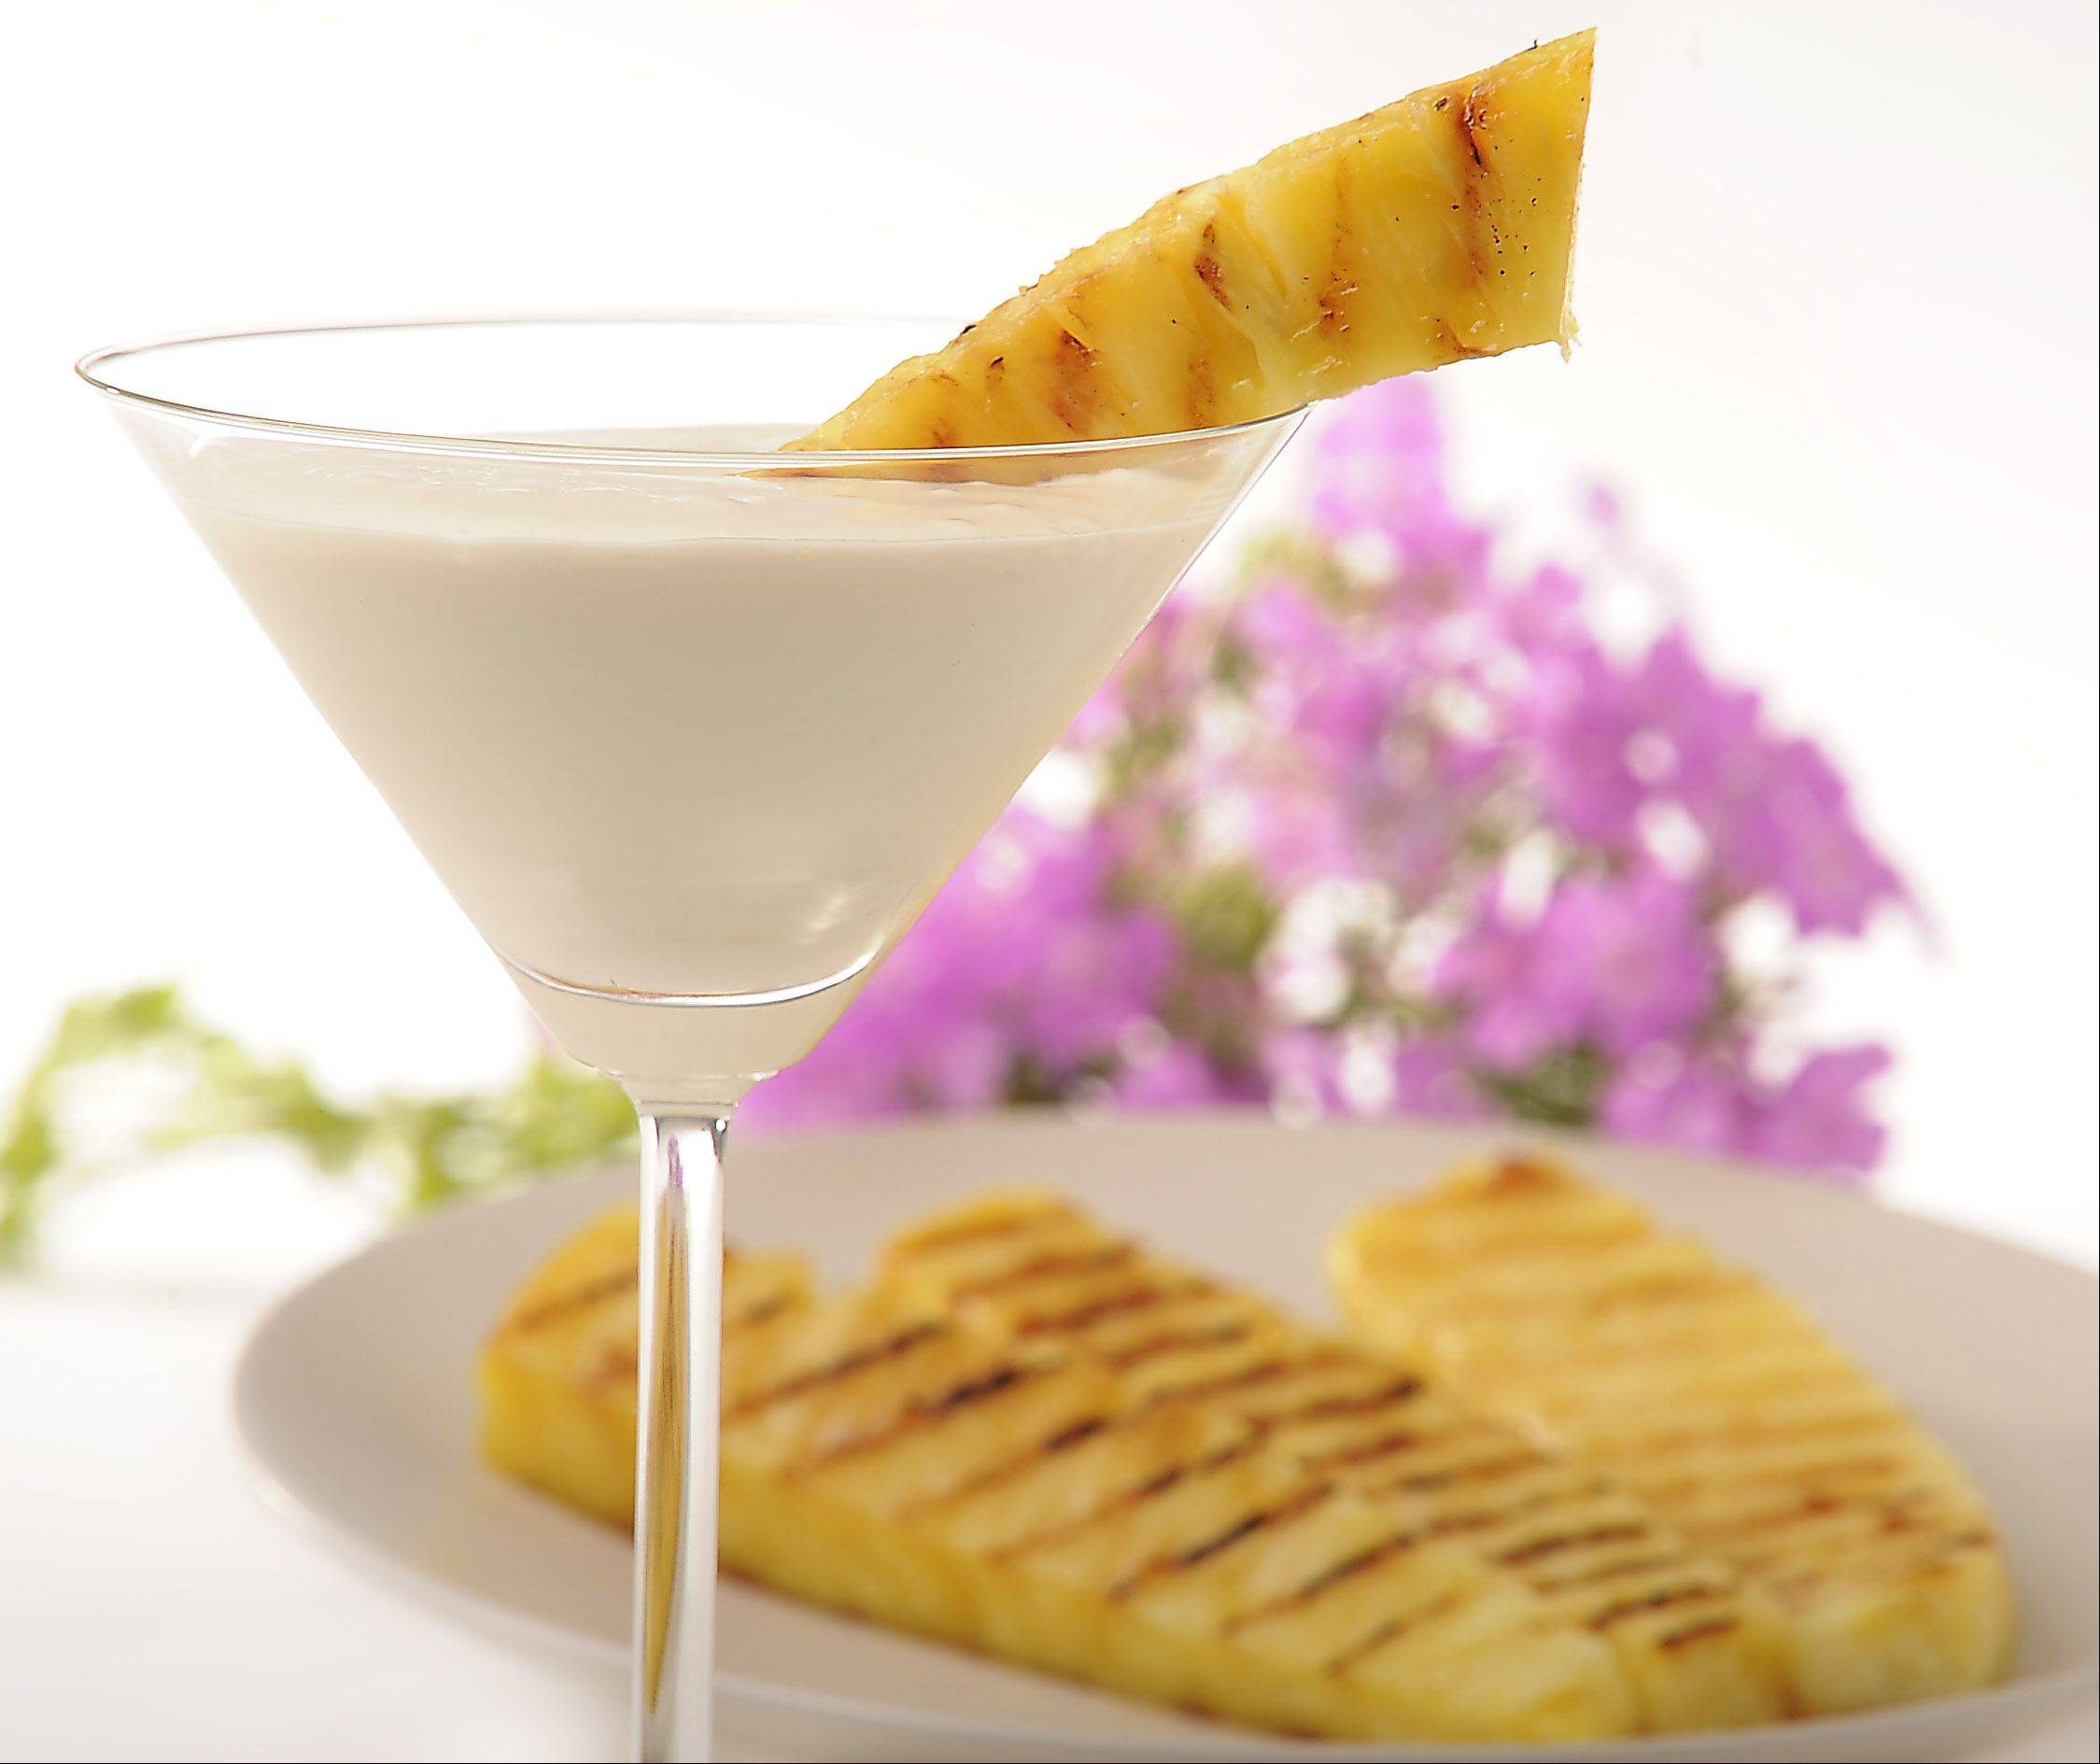 Grilled pineapple with orange-infused sauce is a refreshing treat on a hot summer day.